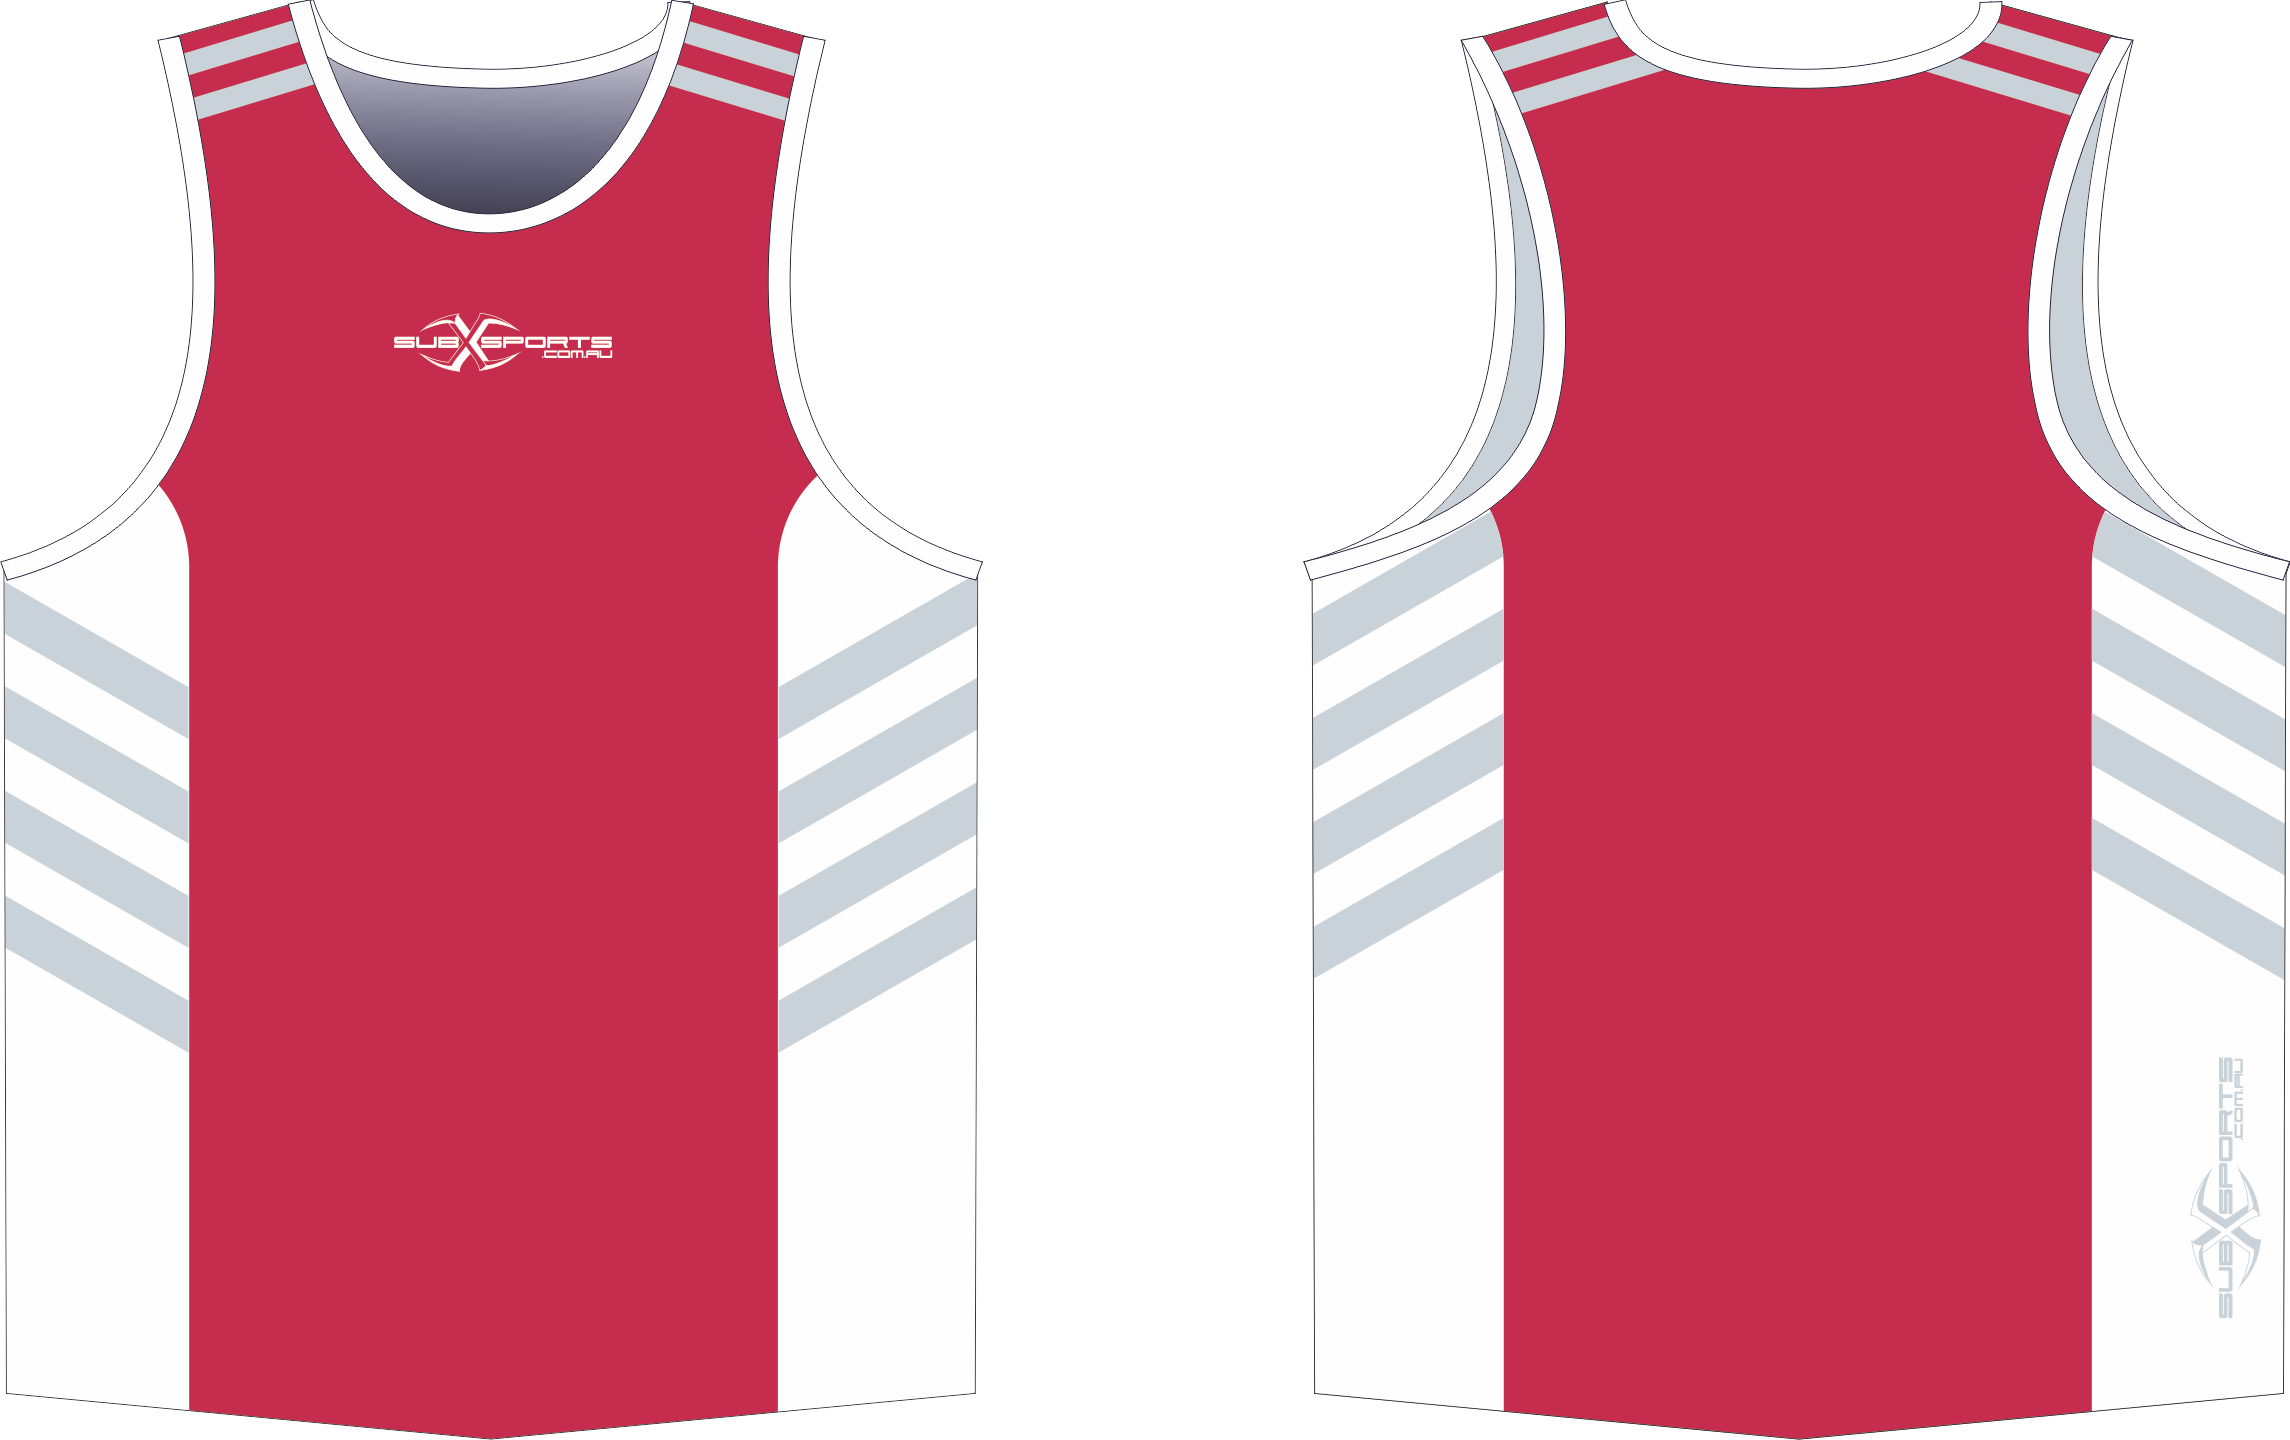 S204XS Singlet Red White Silver.png